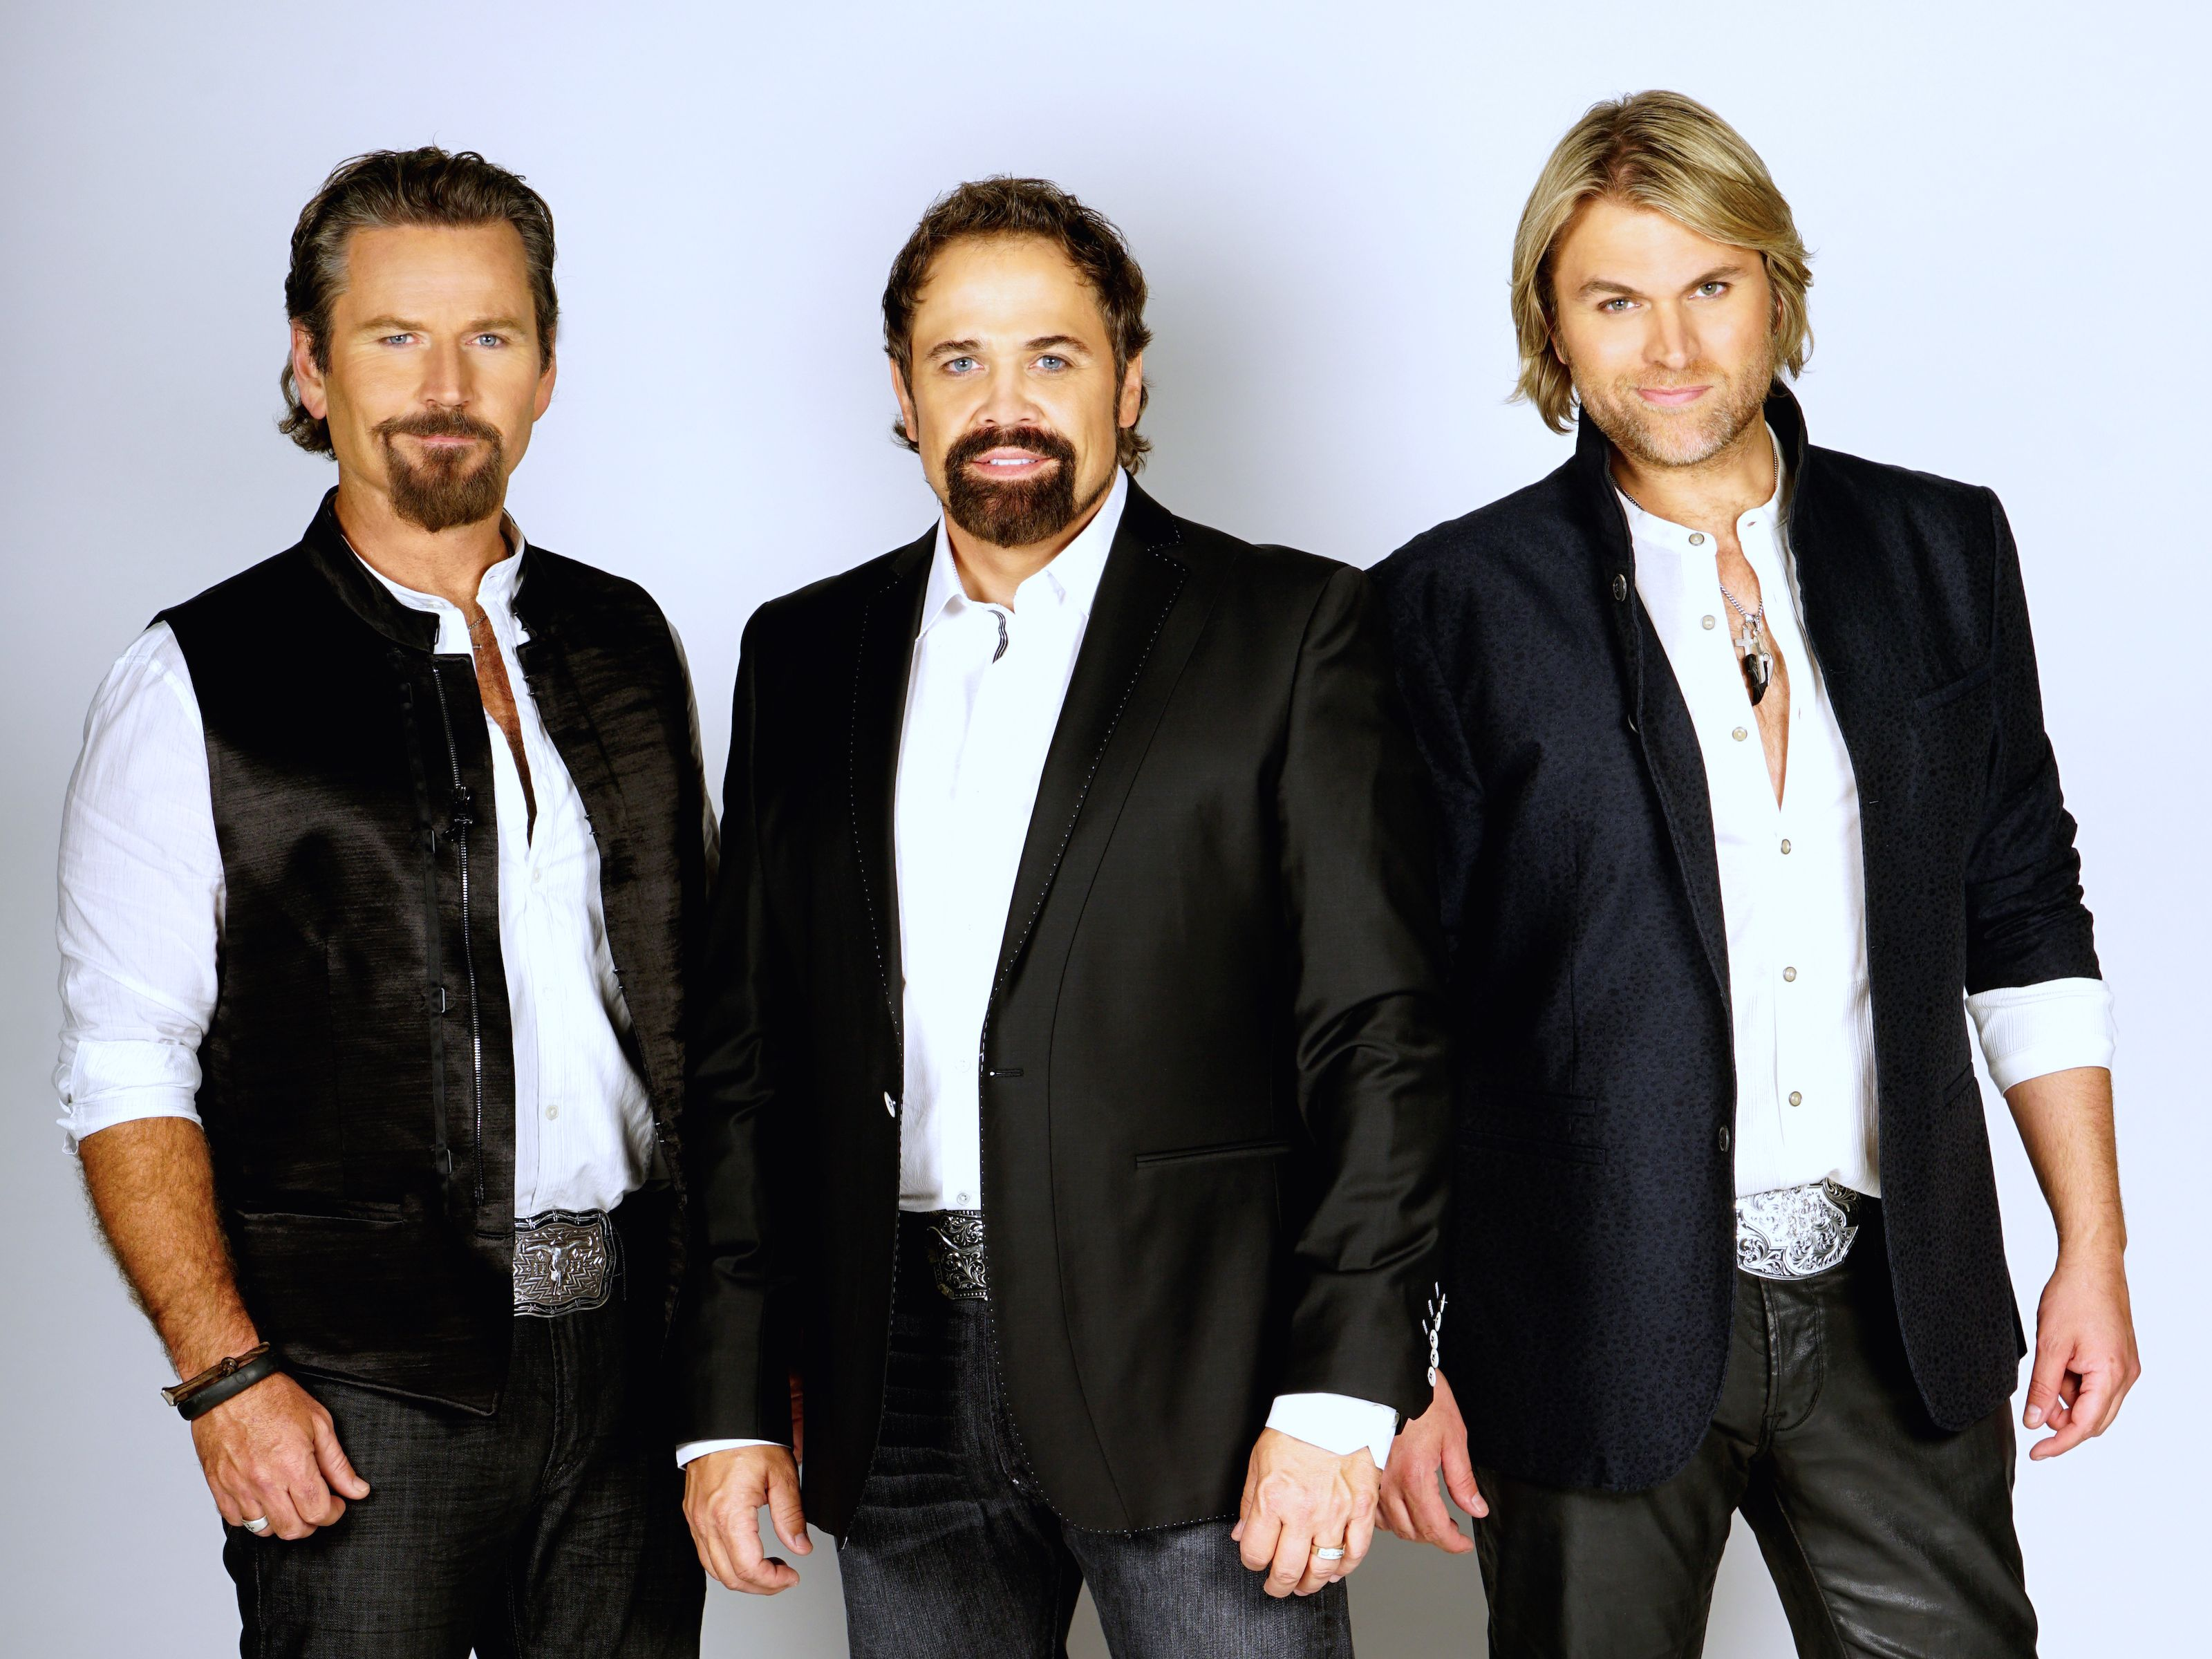 Marcus, JC and John have performed over 1500 live concerts worldwide amassing a huge fan base and numerous awards and accolades.